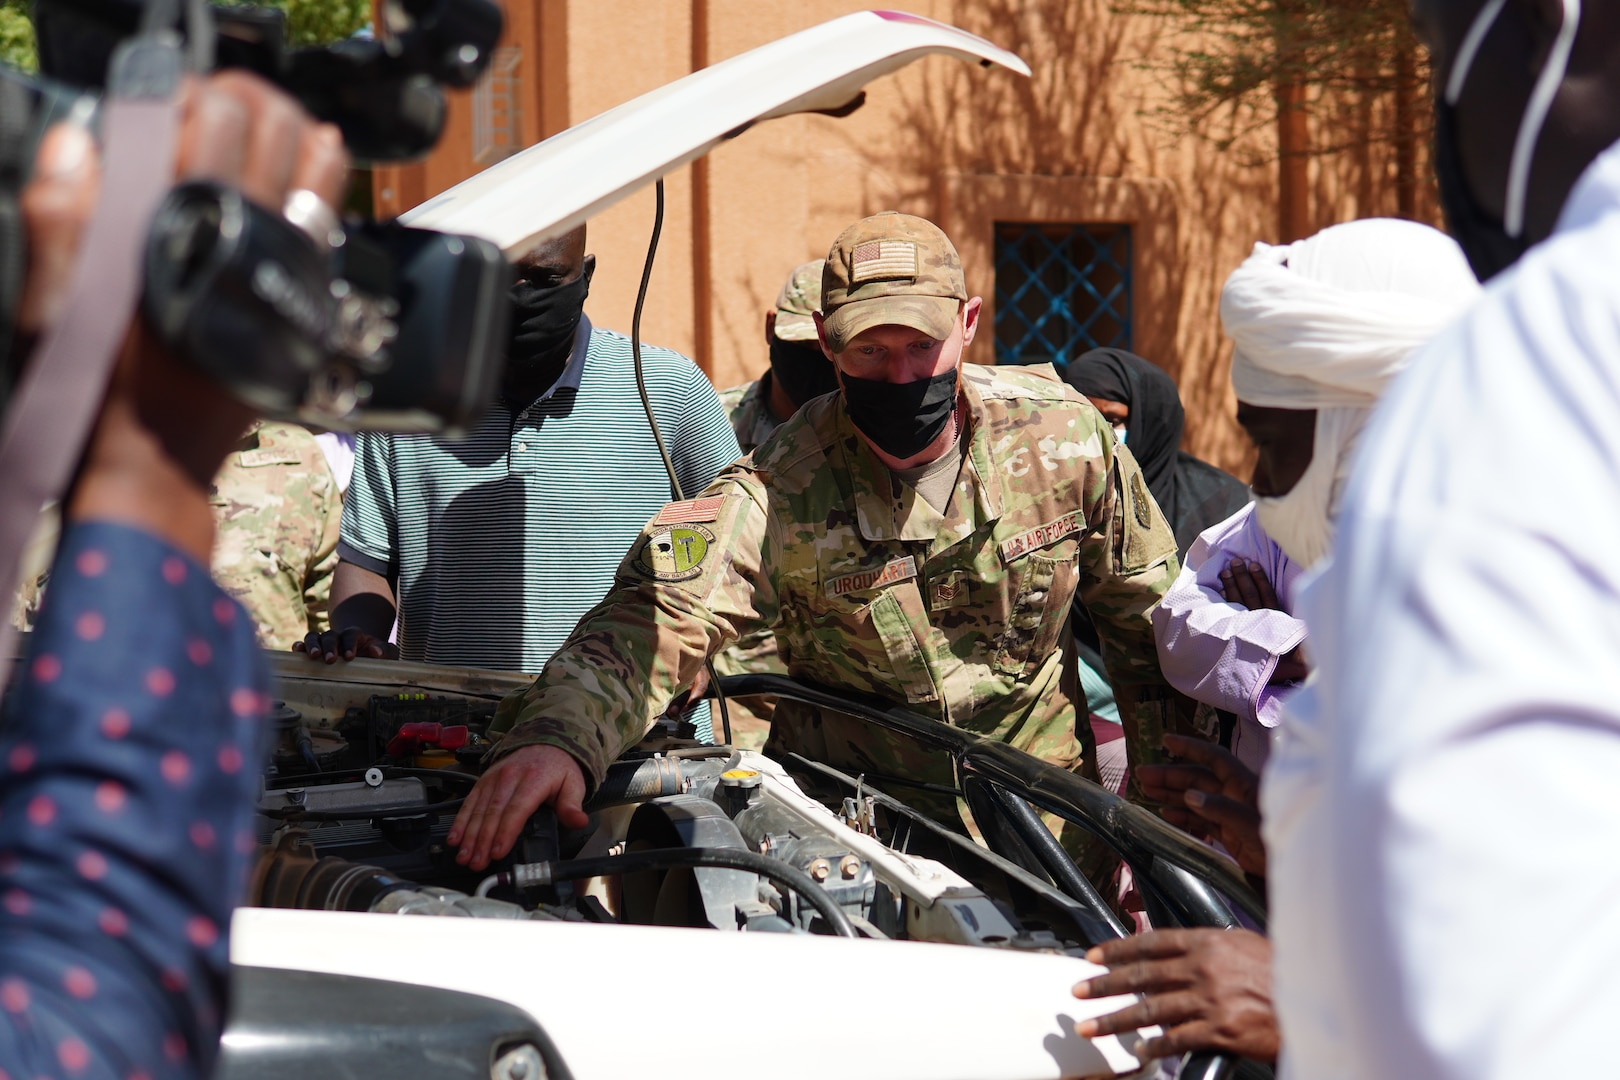 U.S. Air Force Staff Sgt. Jeffrey Urquhart, 724th Logistics Readiness Flight vehicle maintenance technician, briefs repairs that were made on an unserviceable ambulance to medical staff and media at the District Sanitaire Commune d'Agadez clinic in Agadez, Niger, Oct. 30, 2020.